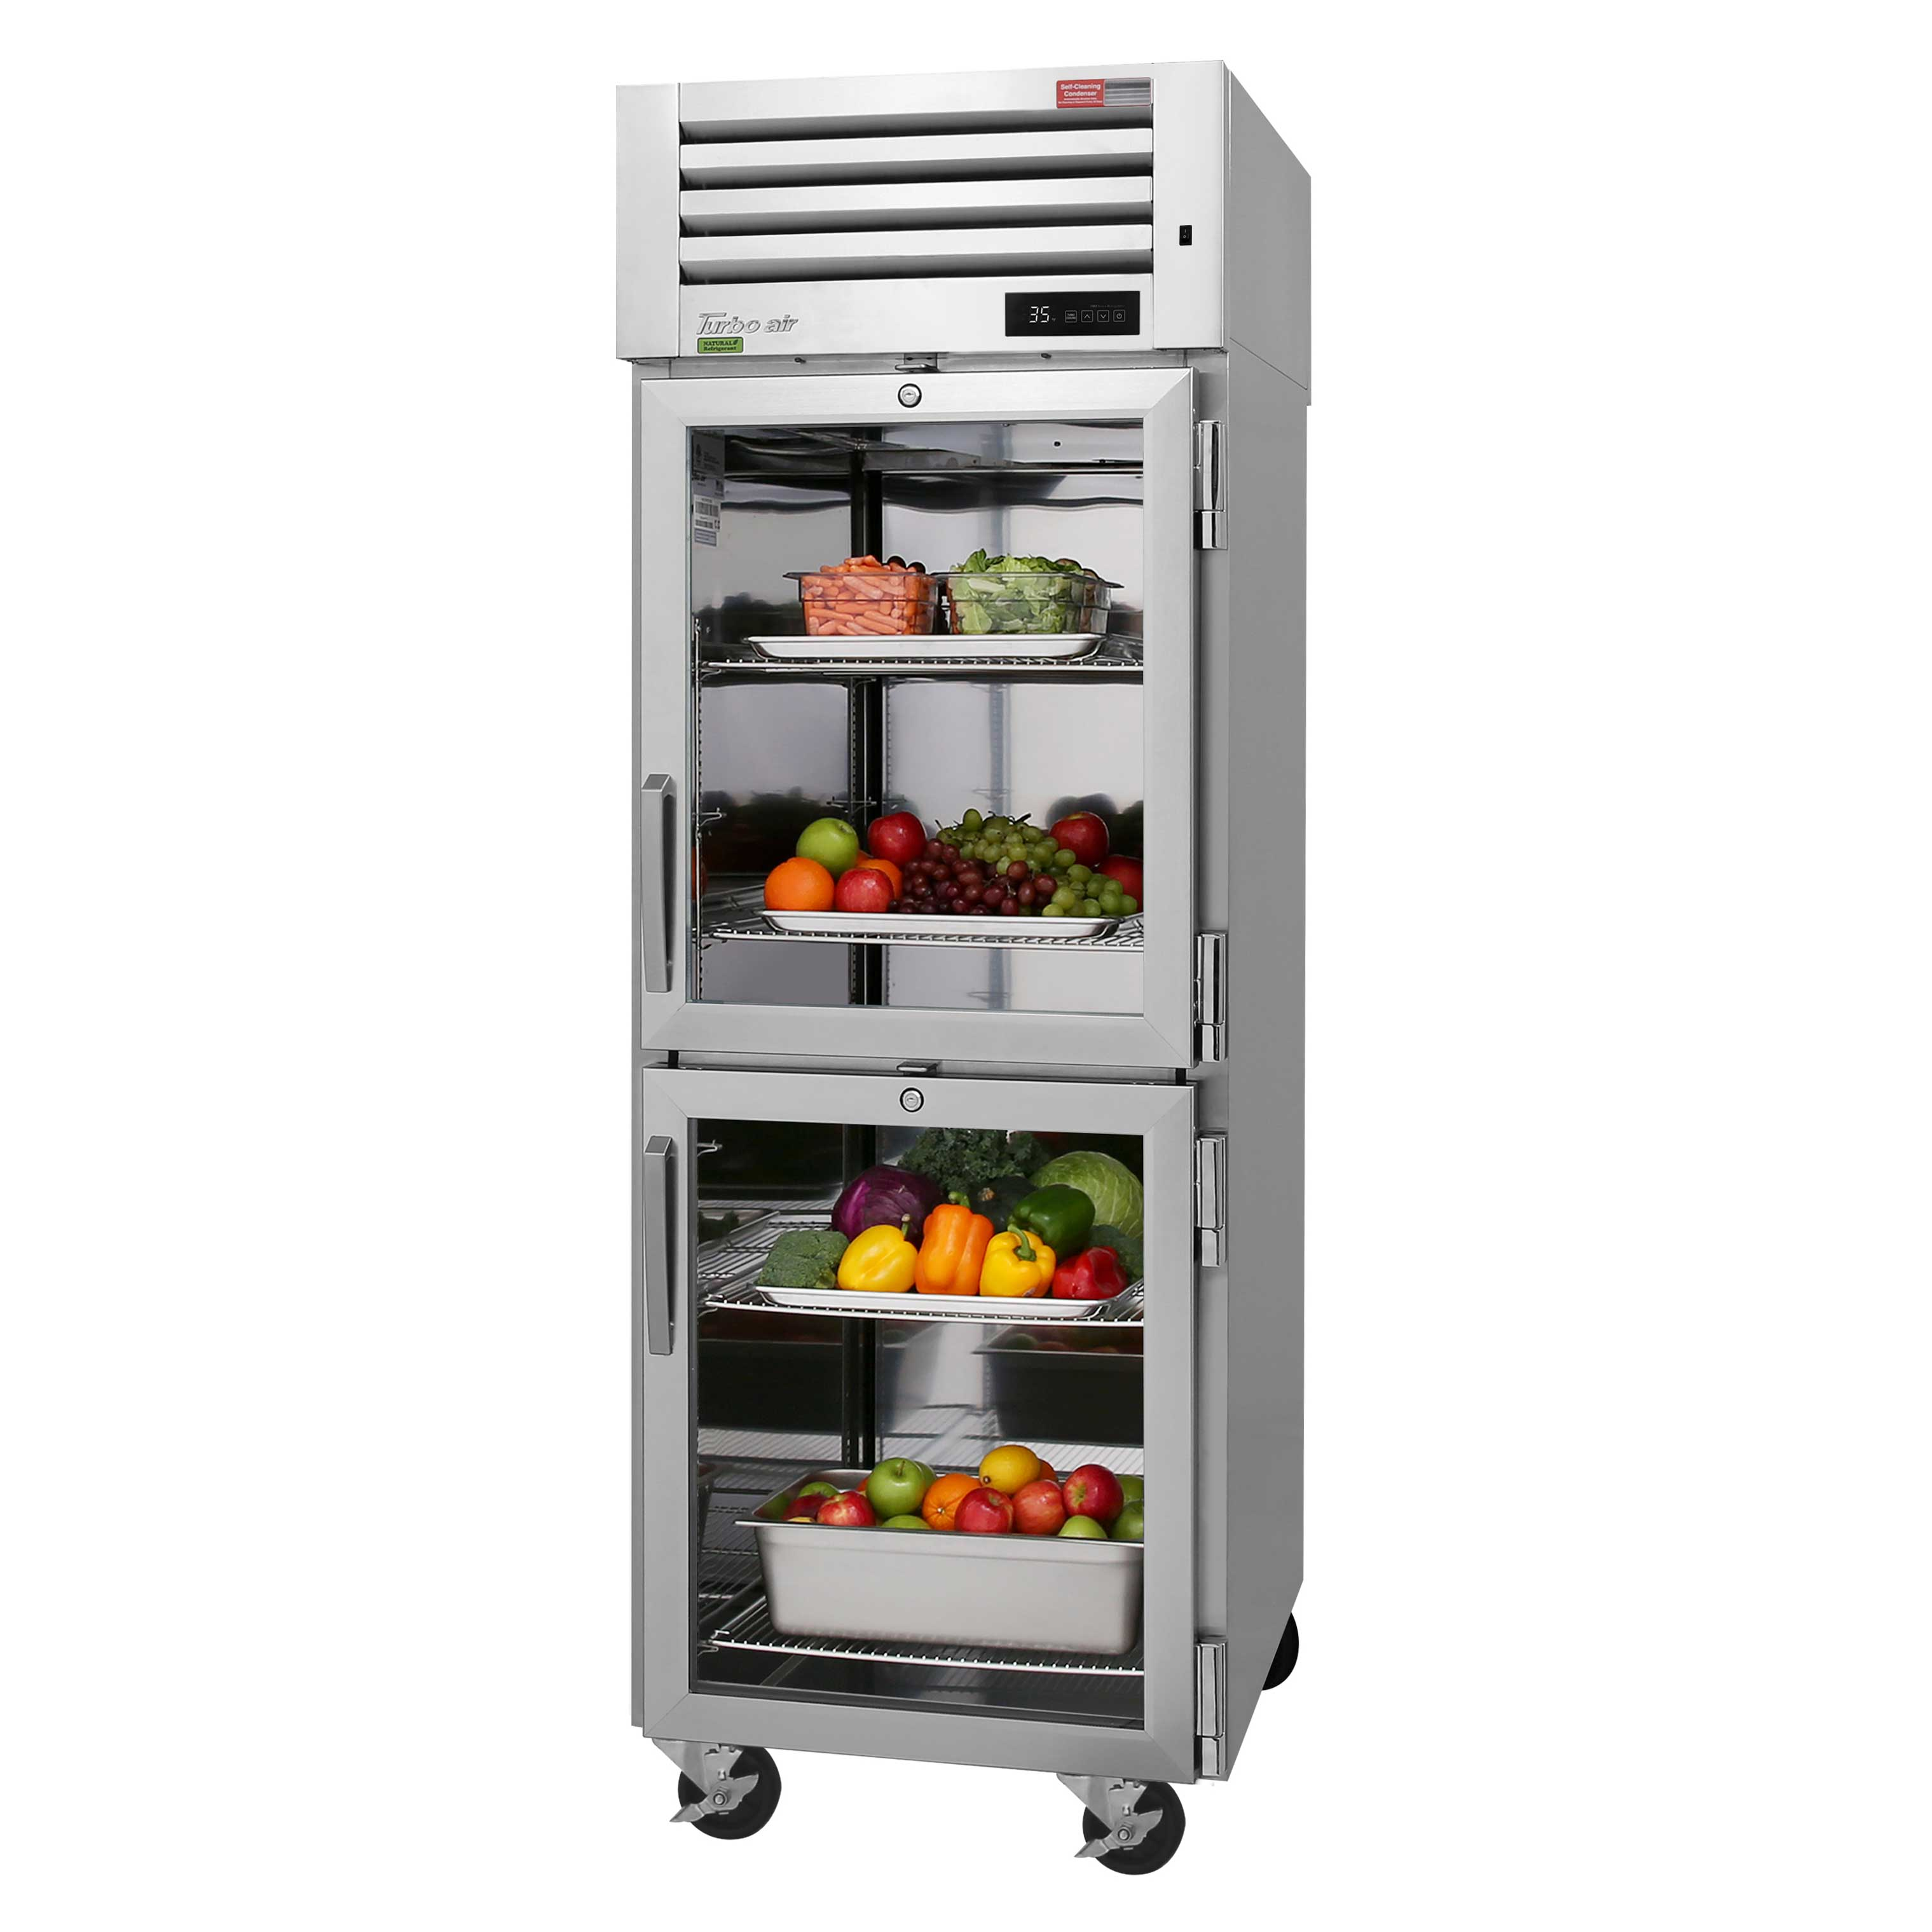 Turbo Air PRO-26-2R-G-N refrigerator, reach-in